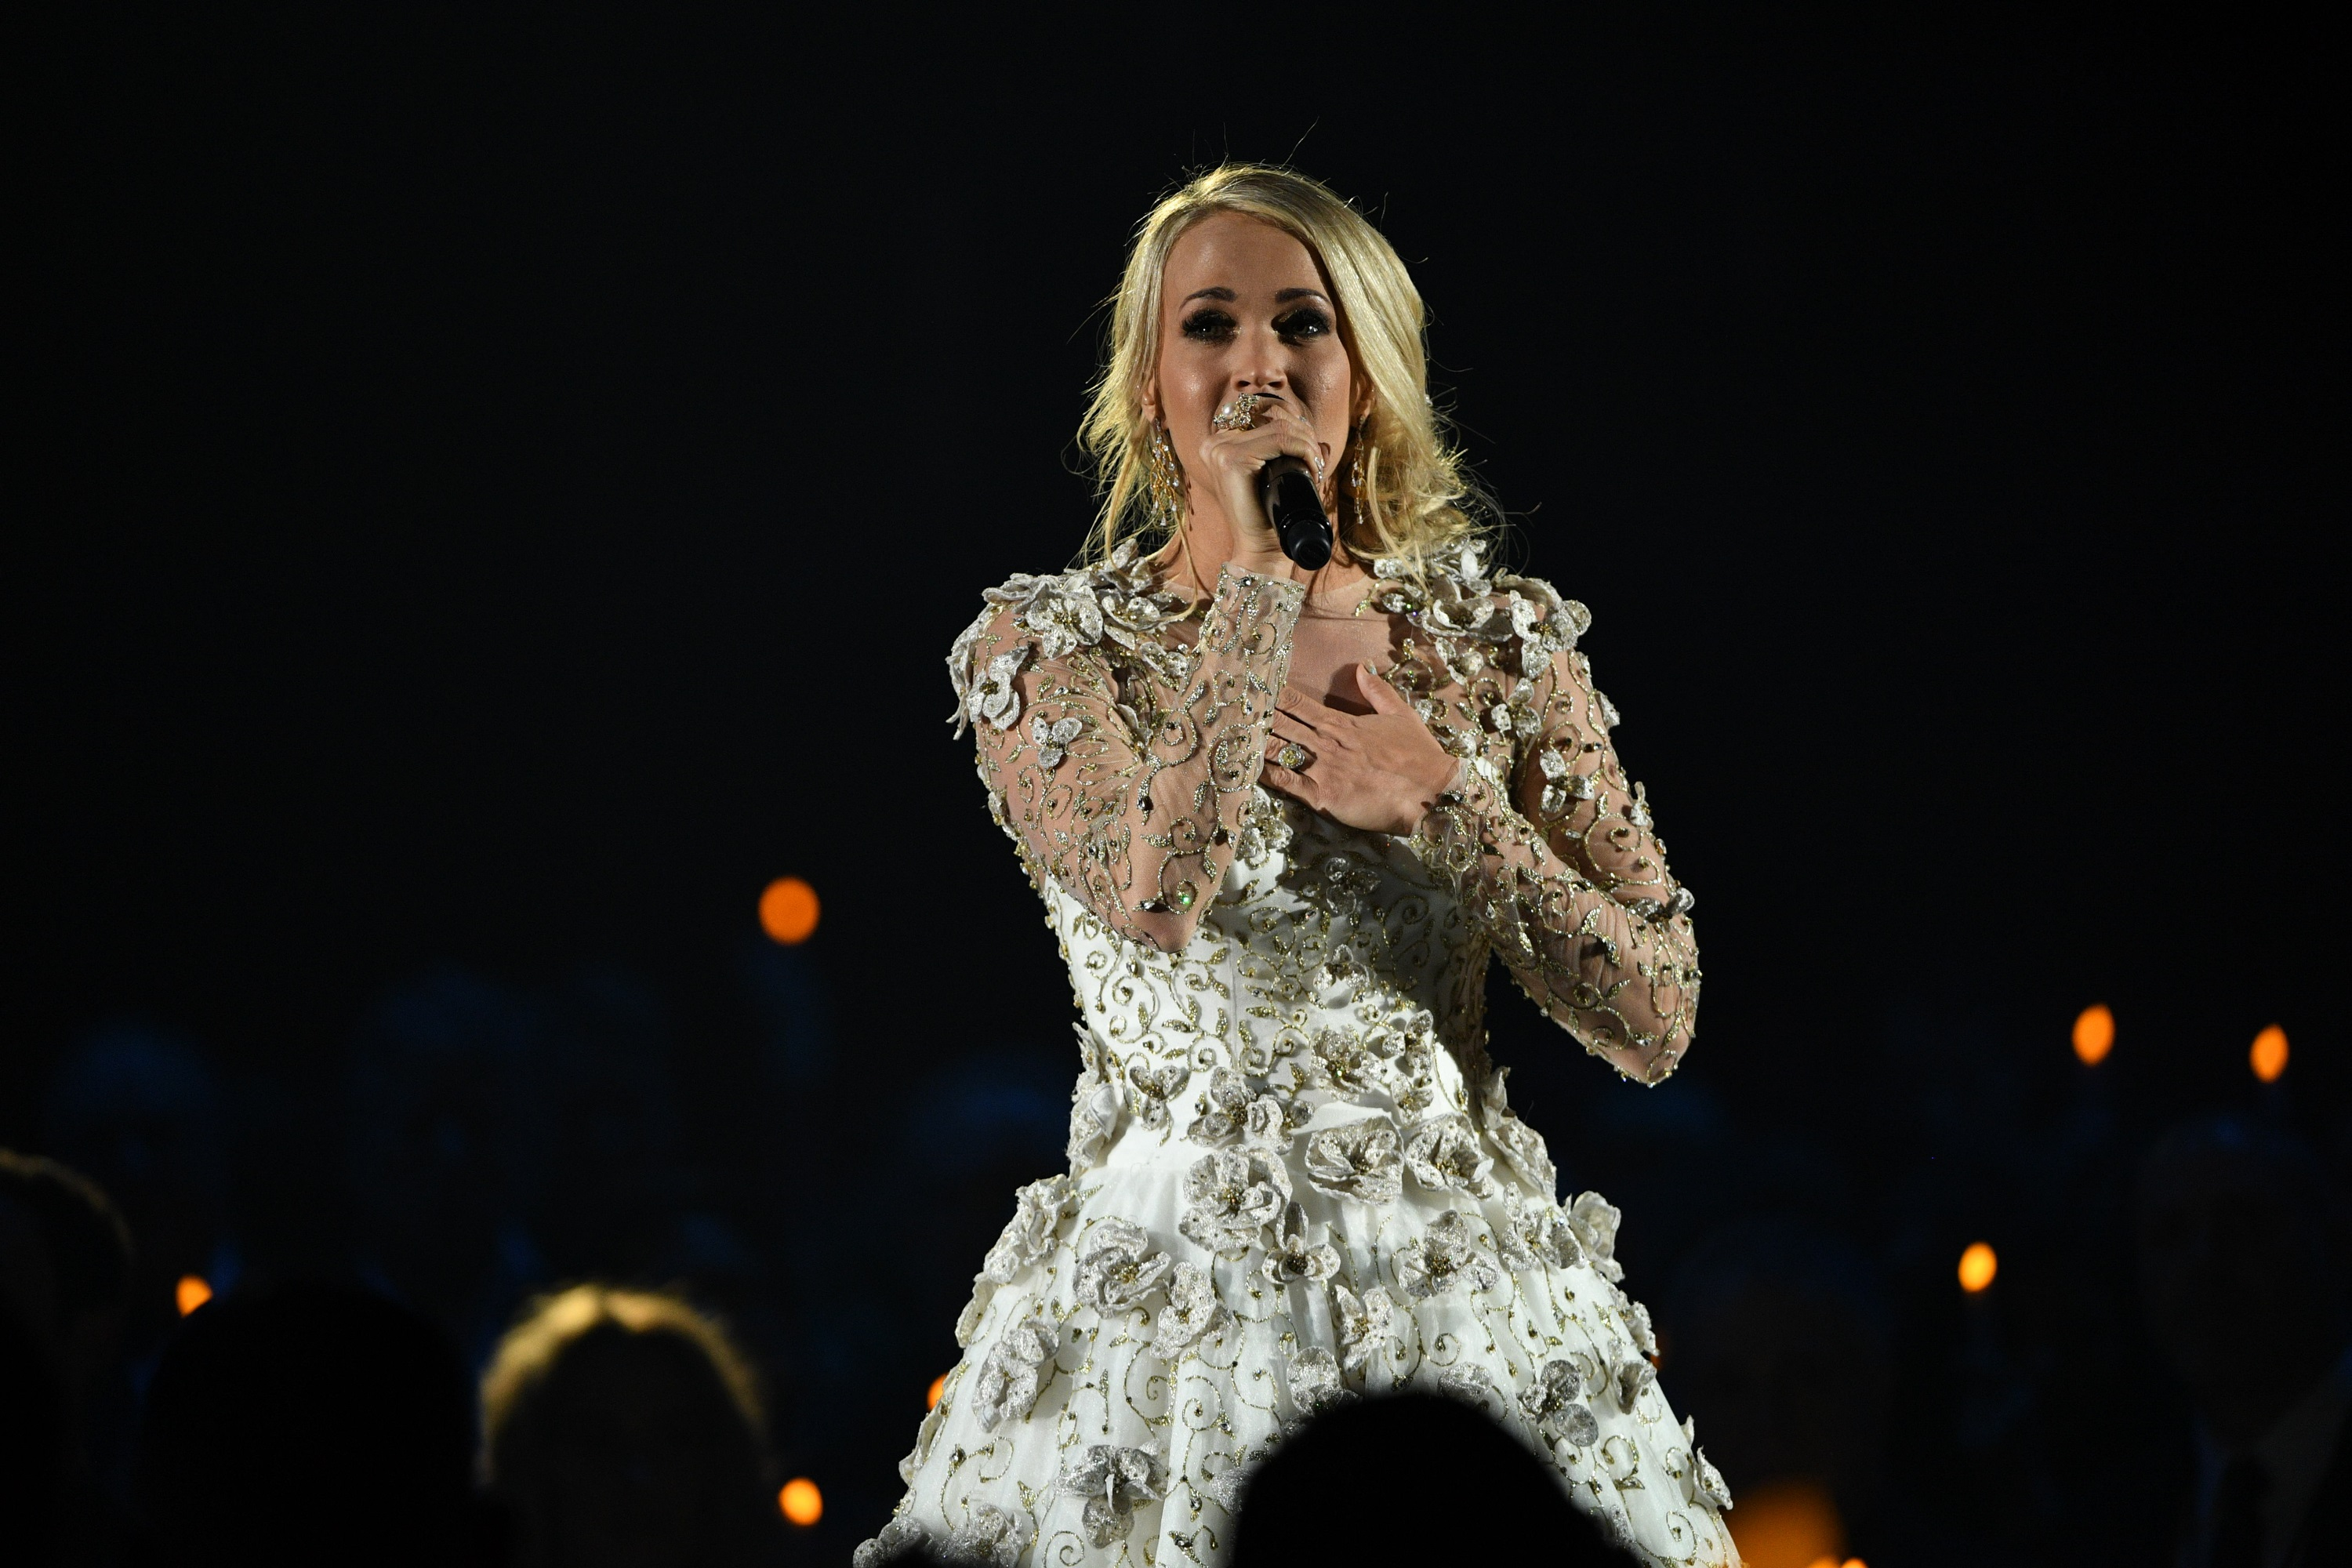 Carrie Underwood breaks her wrist, sustains other injuries in fall